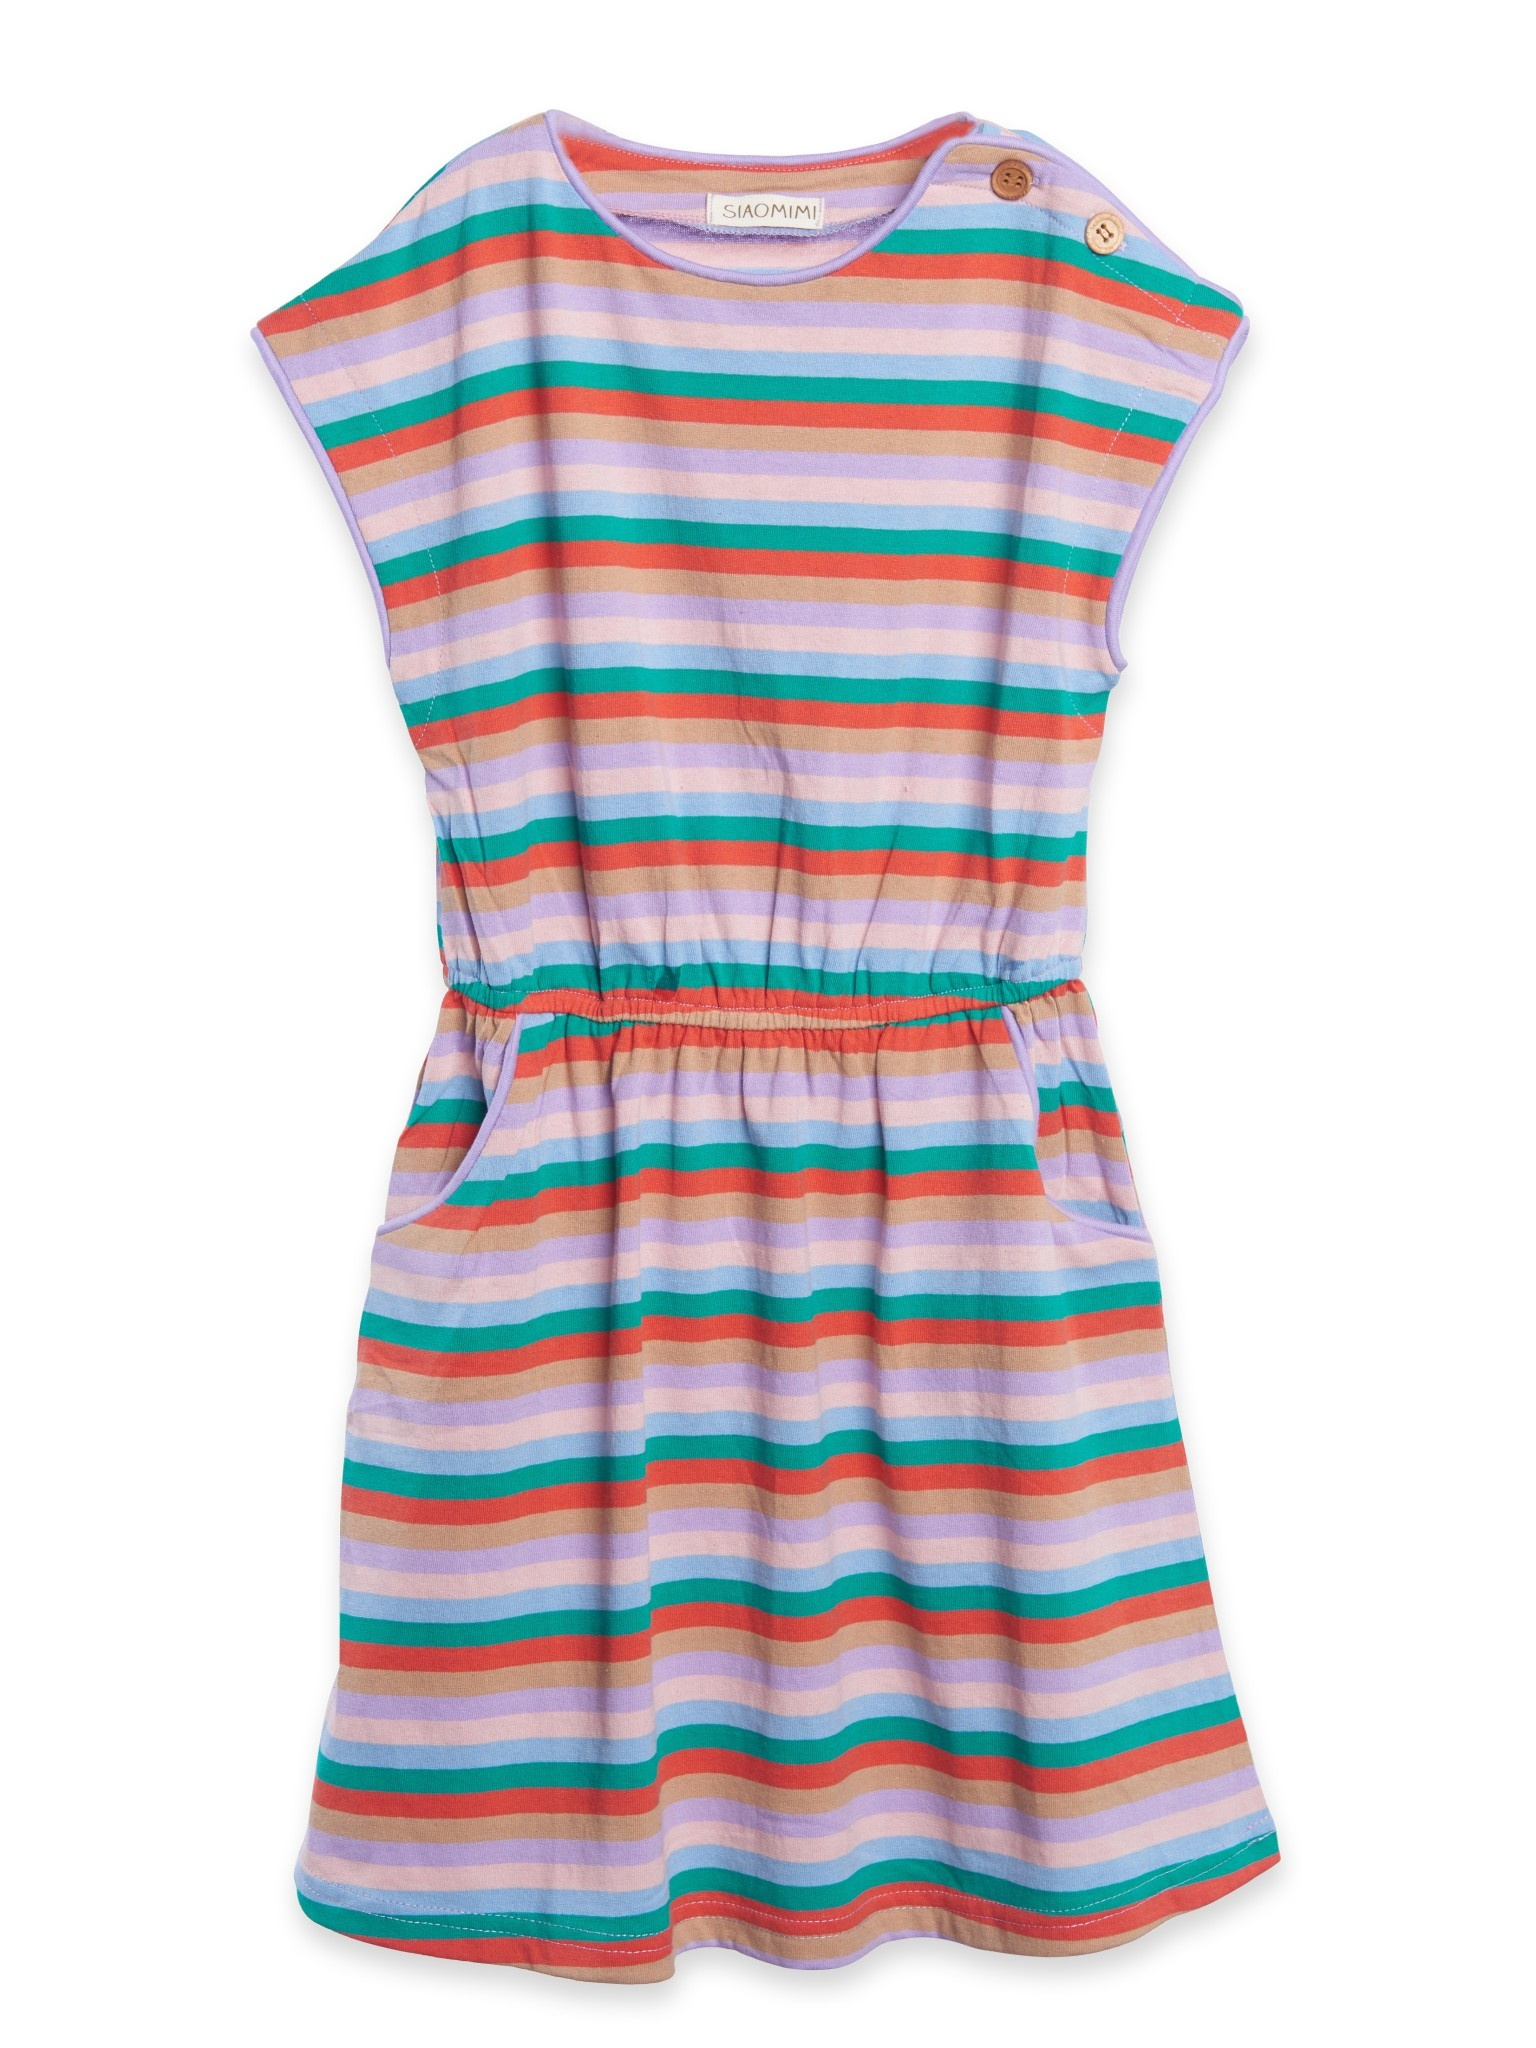 Siaomimi Maddie Dress - Rainbow Stripe